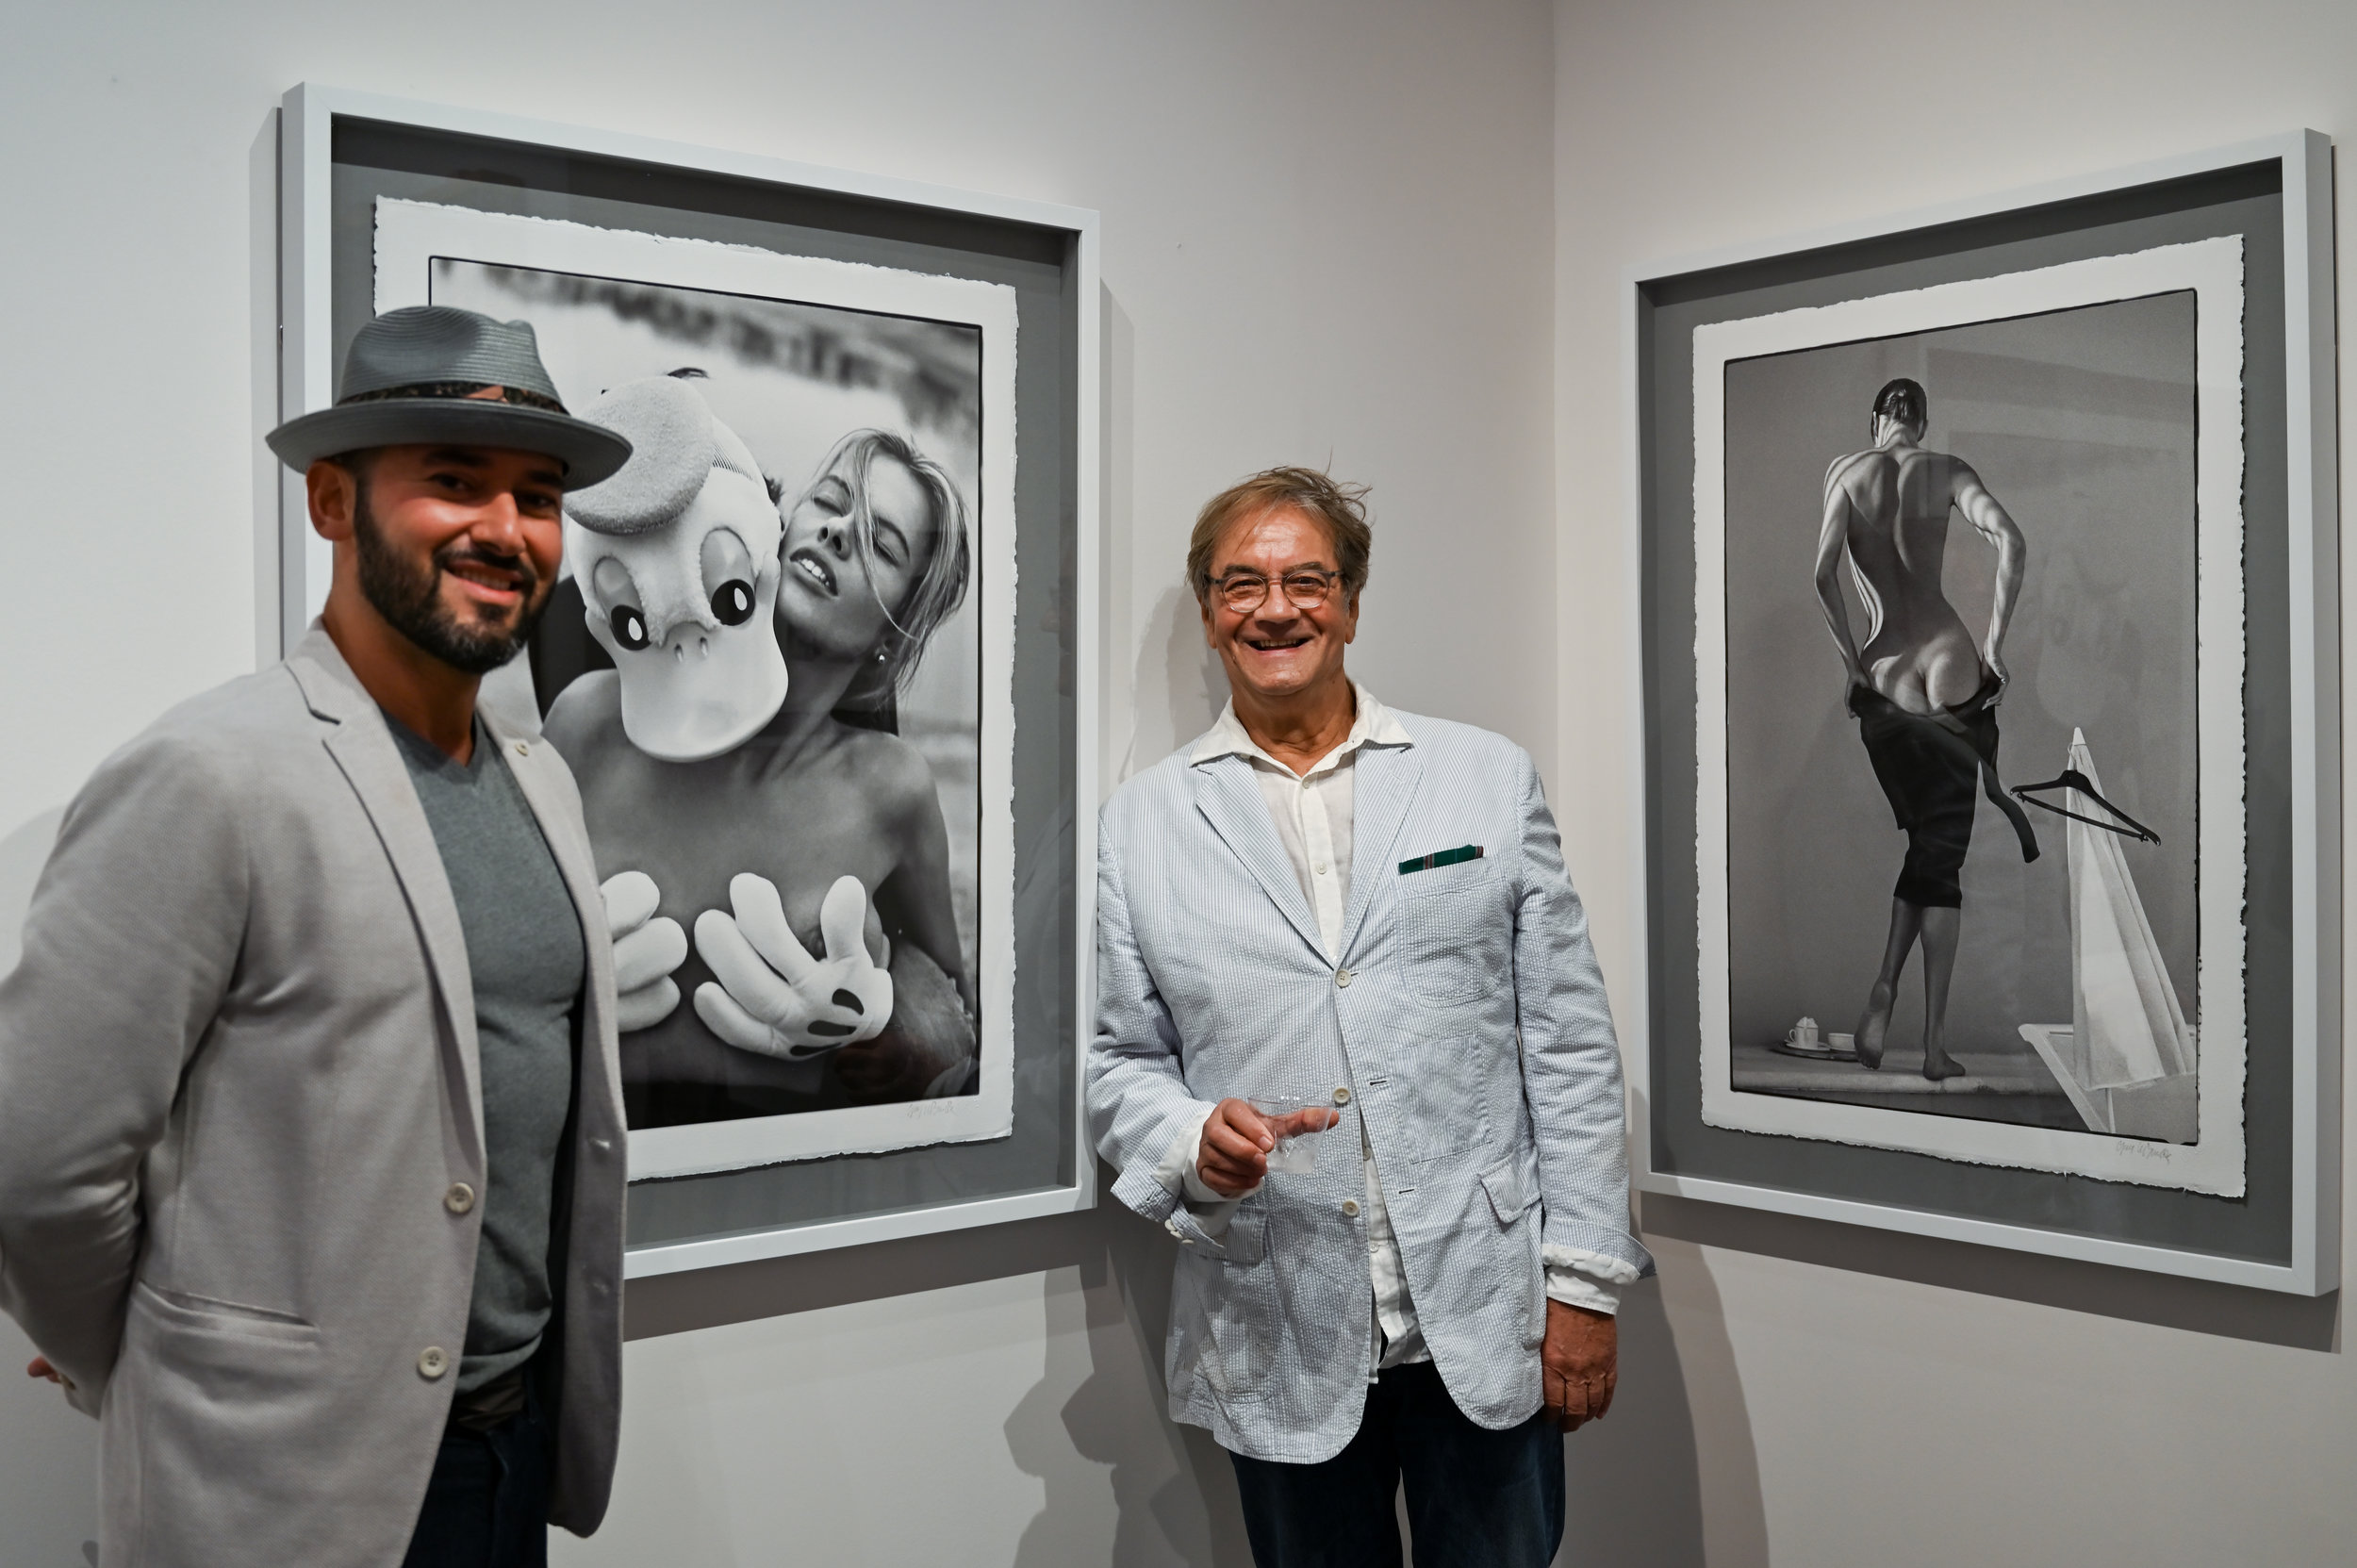 Dmitry Prut, Founder and President of Avant Gallery, with Guy Le Baube. © Federica Belli